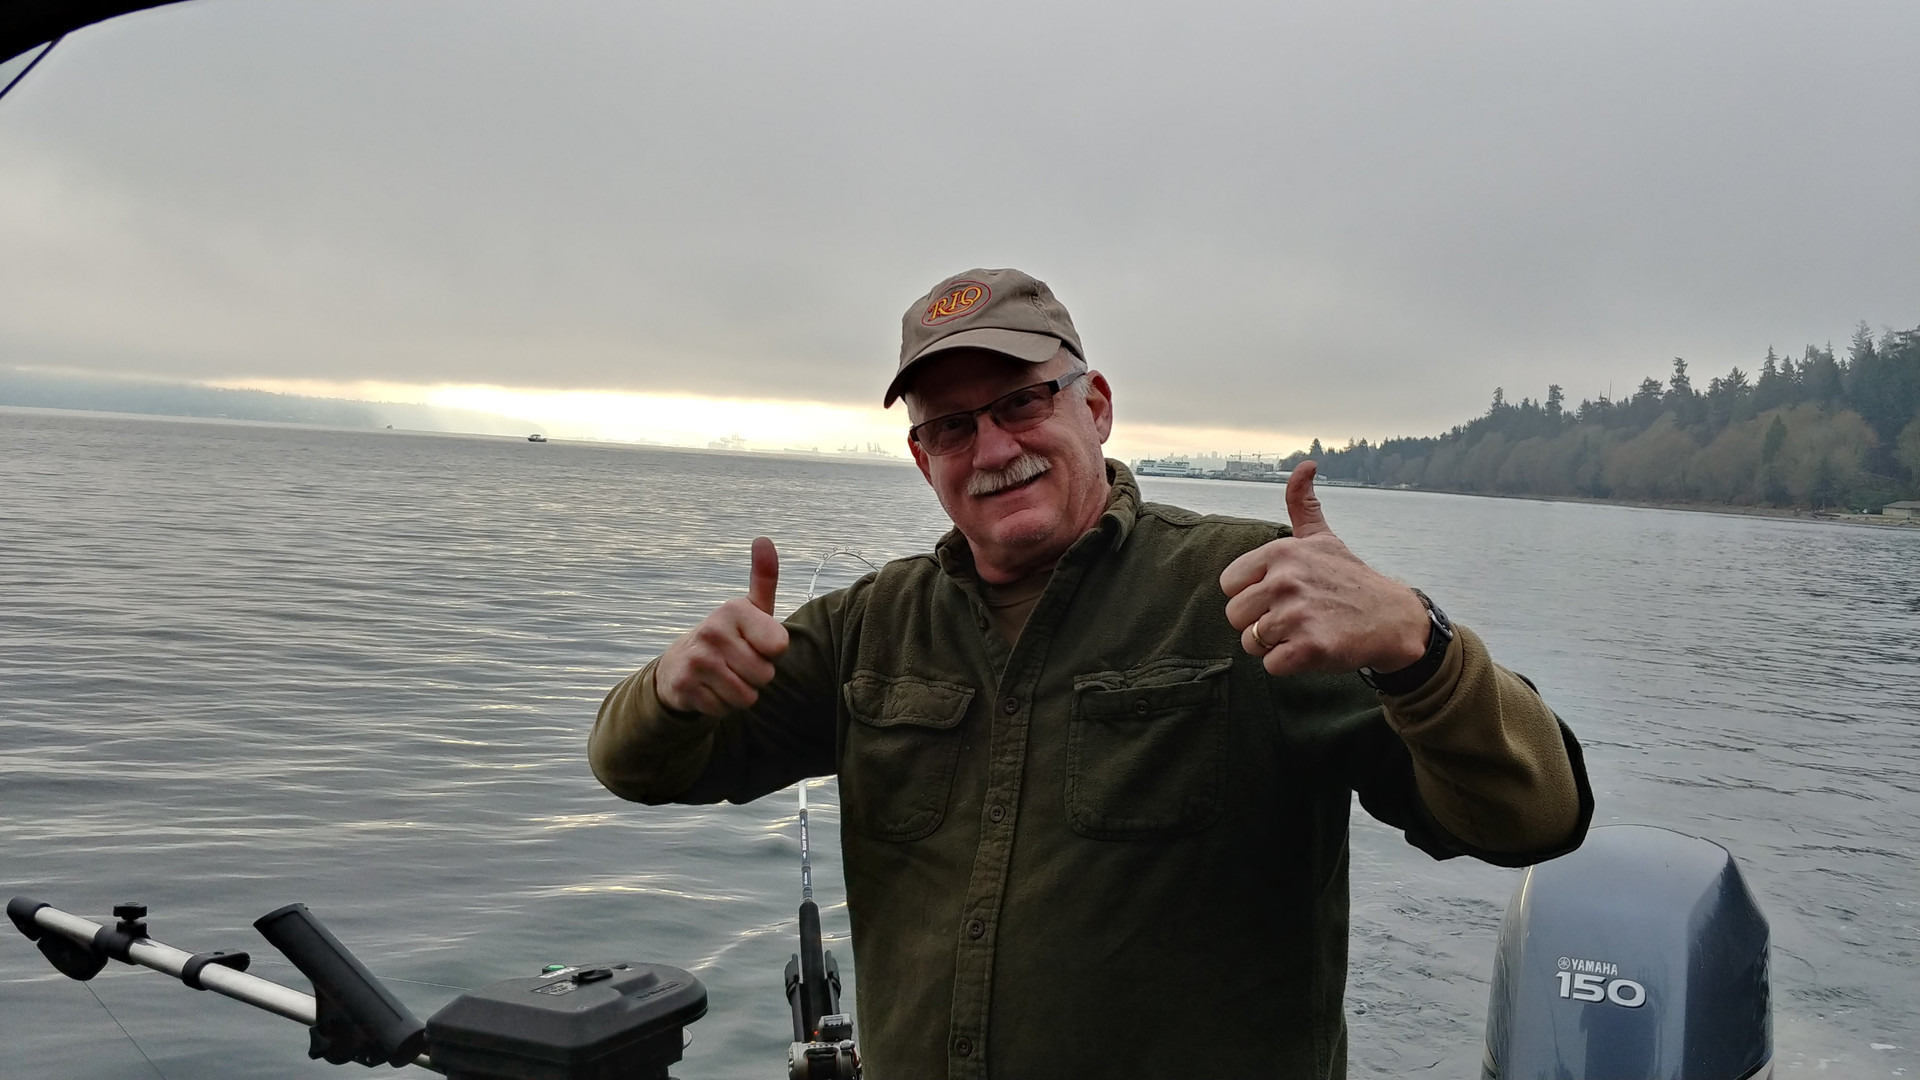 Skipper Brian on Puget Sound